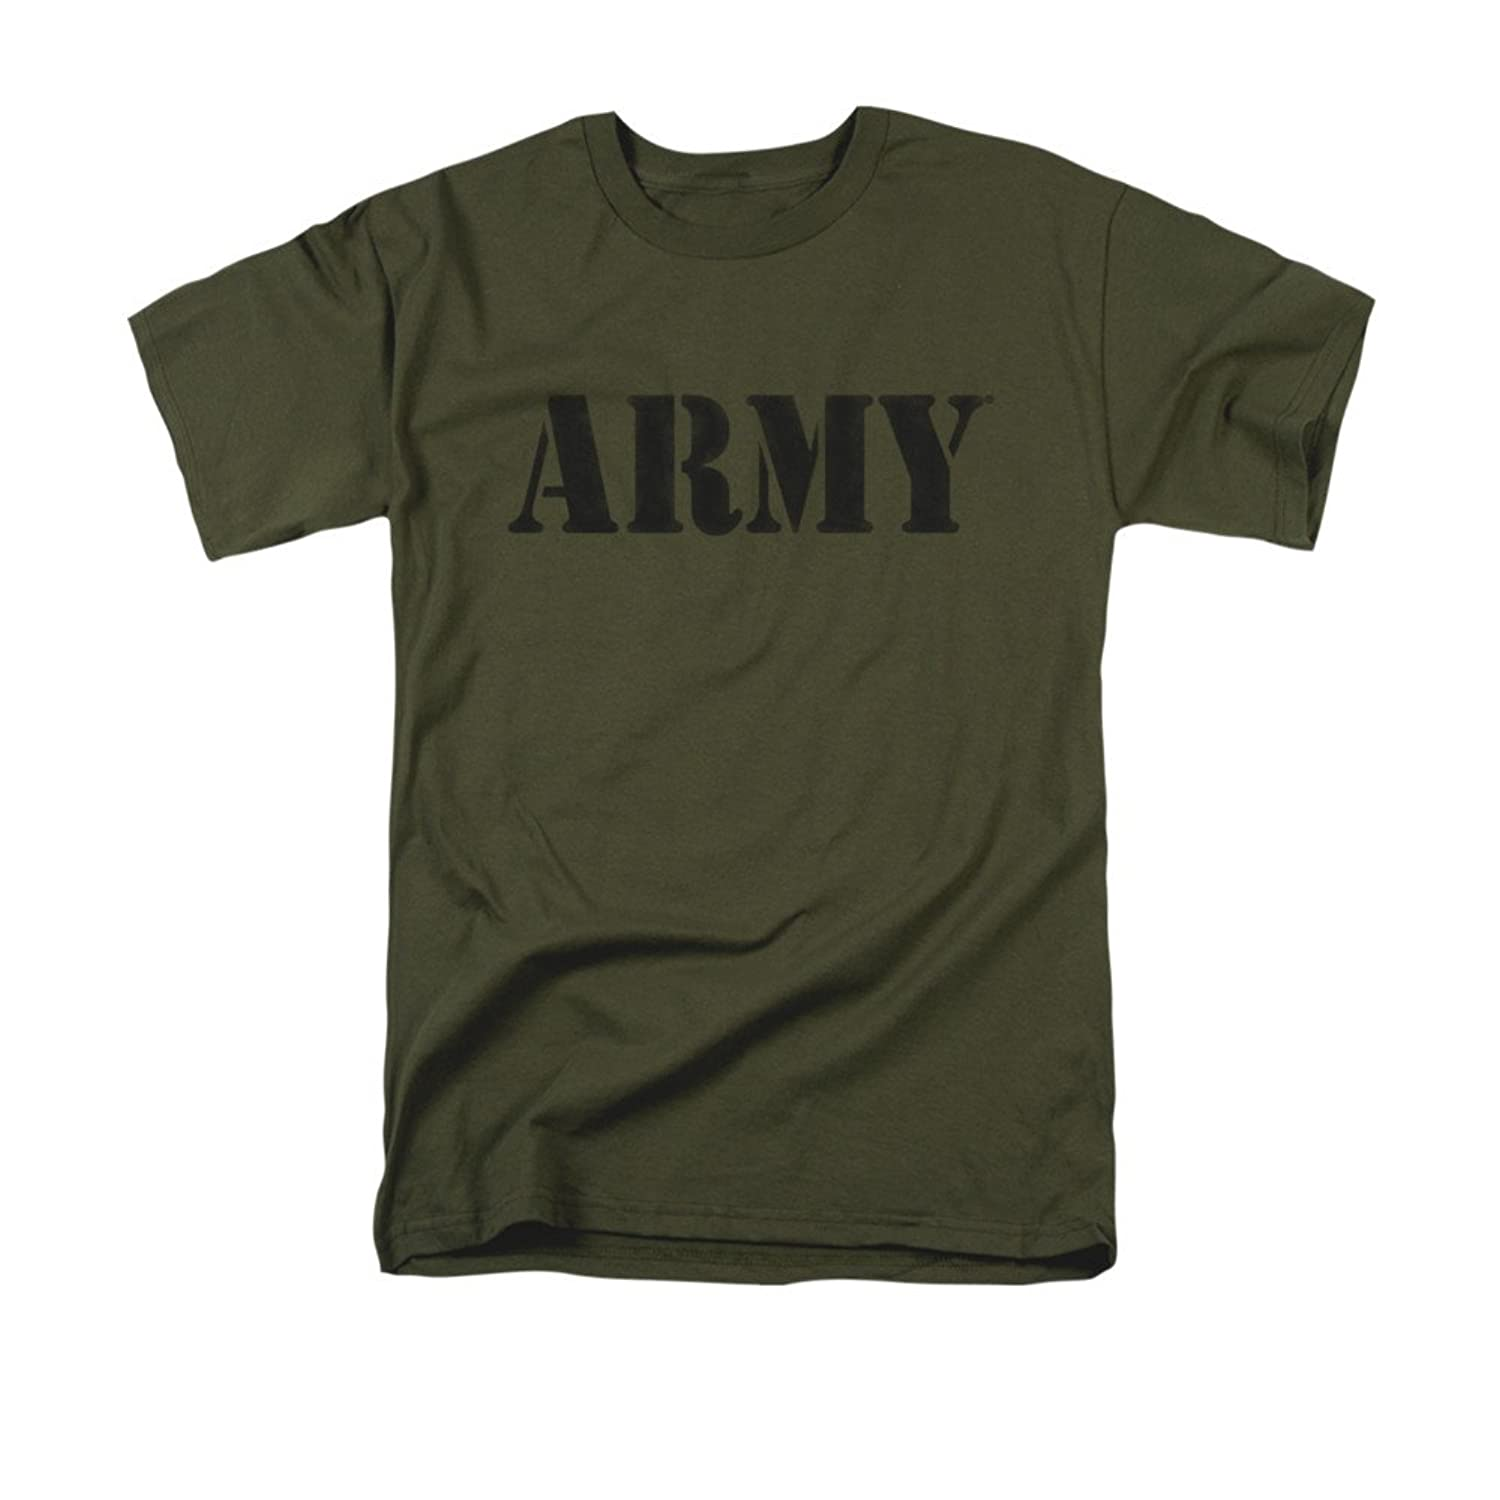 ARMY United States Army Classic Stencil Font Logo Adult T-Shirt